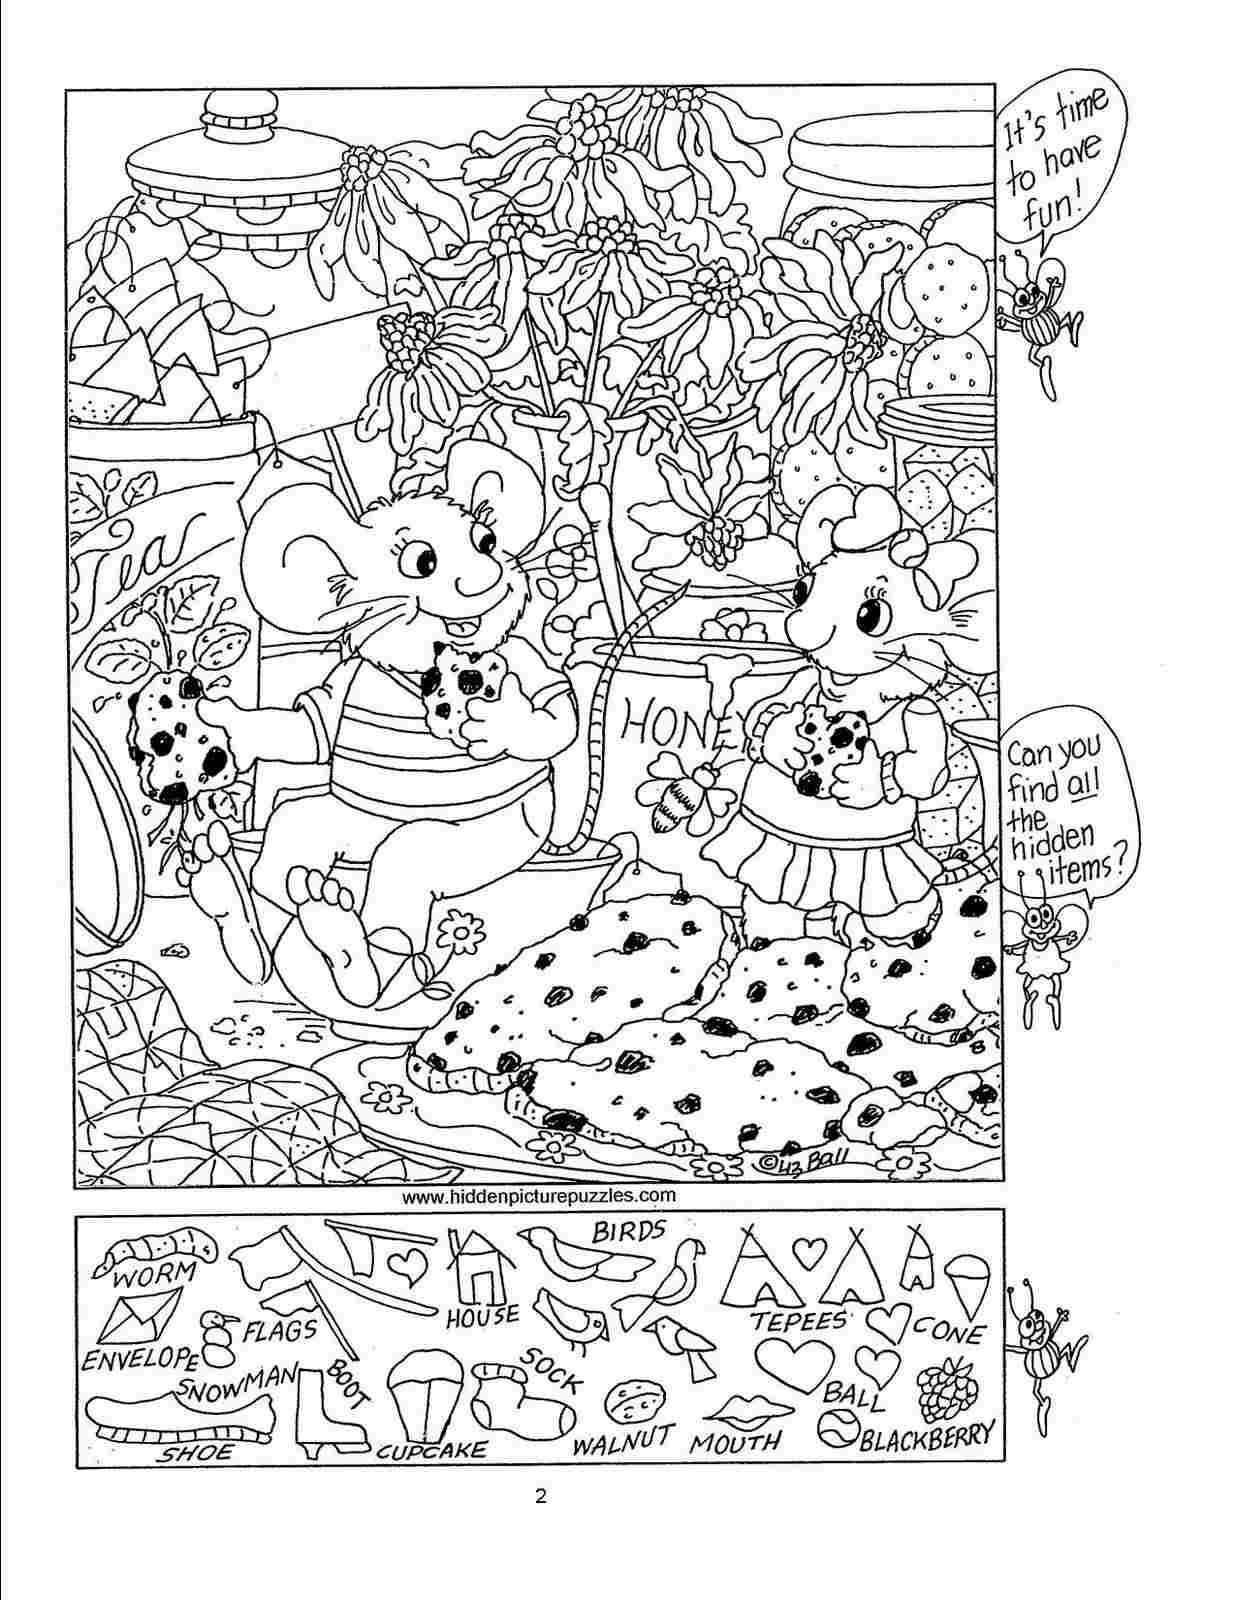 Free Hidden Picture Puzzles For Kids